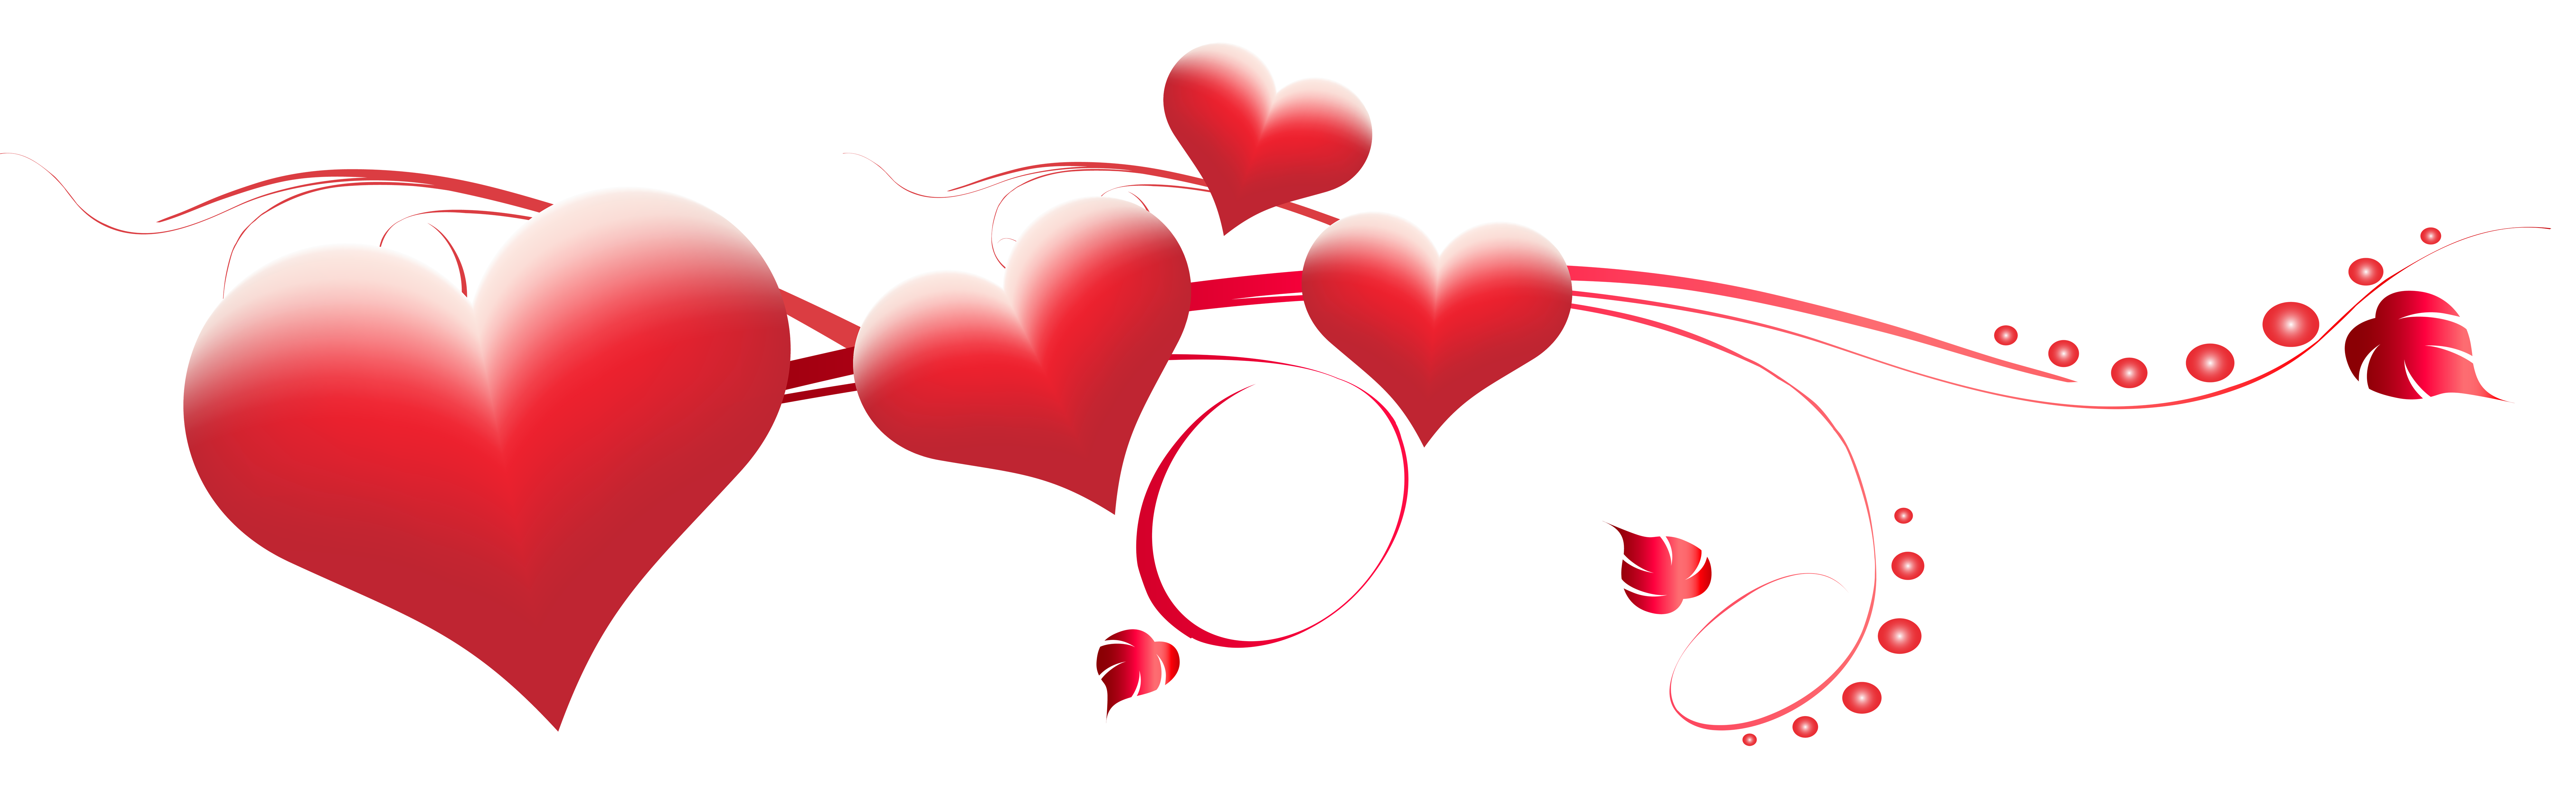 Valentine's Day Hearts Decoration Transparent PNG Clip Art Image.